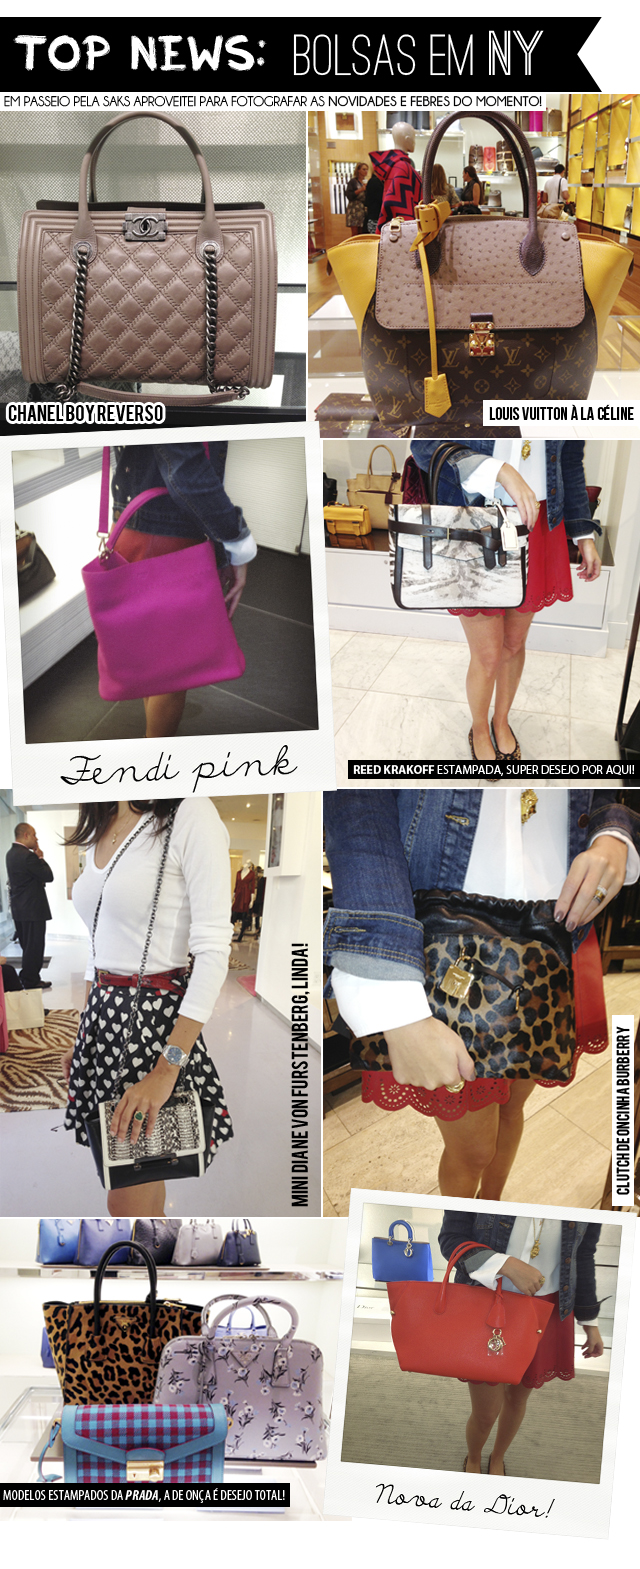 top-bolsas-news